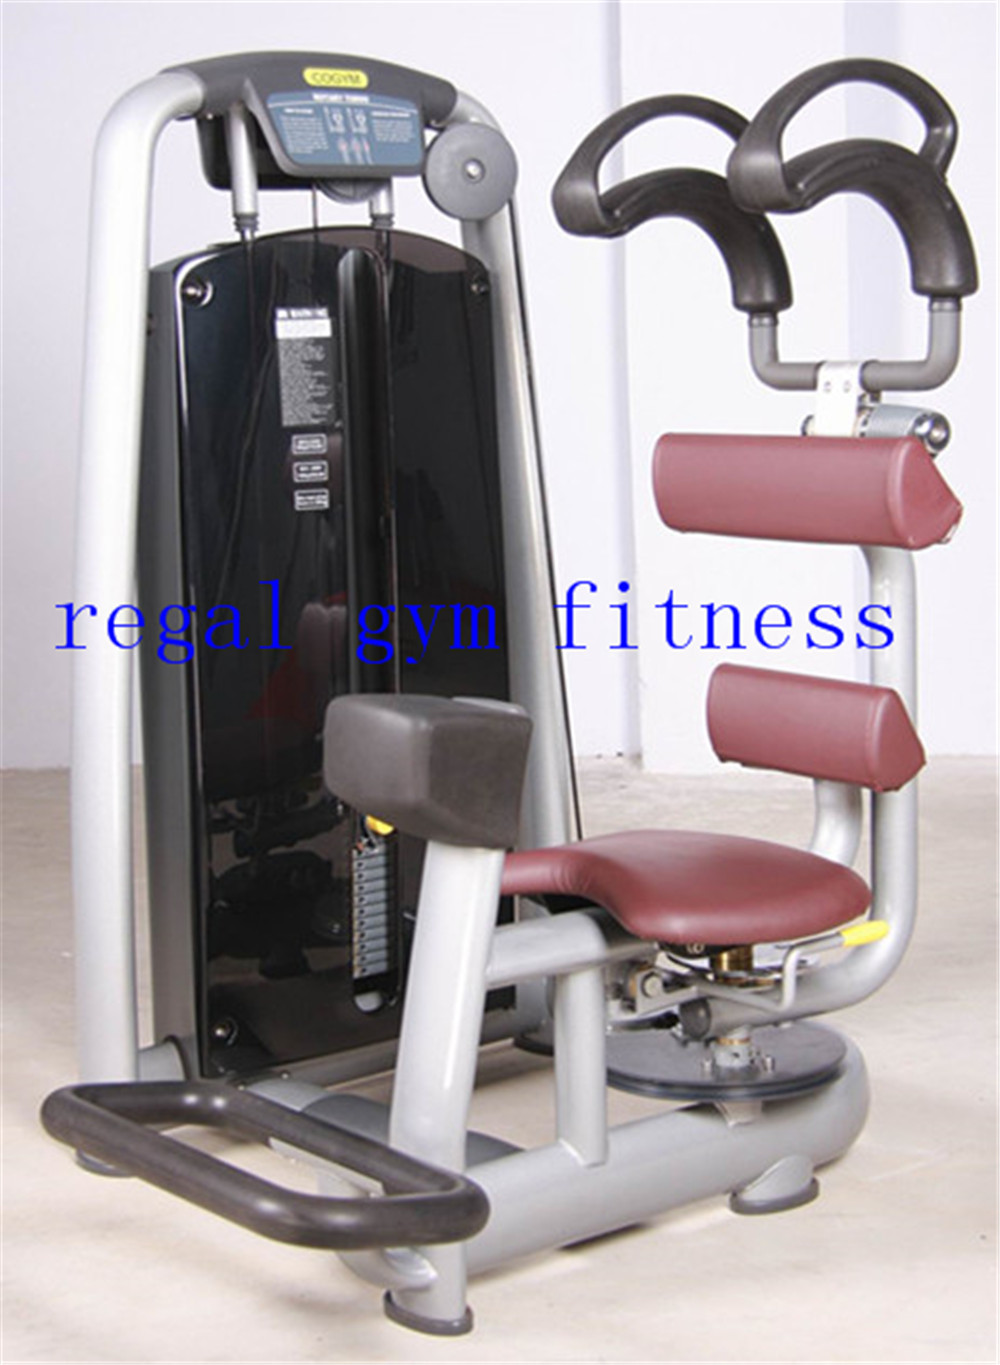 Best quality gym equipment name rotary torso machine exercise